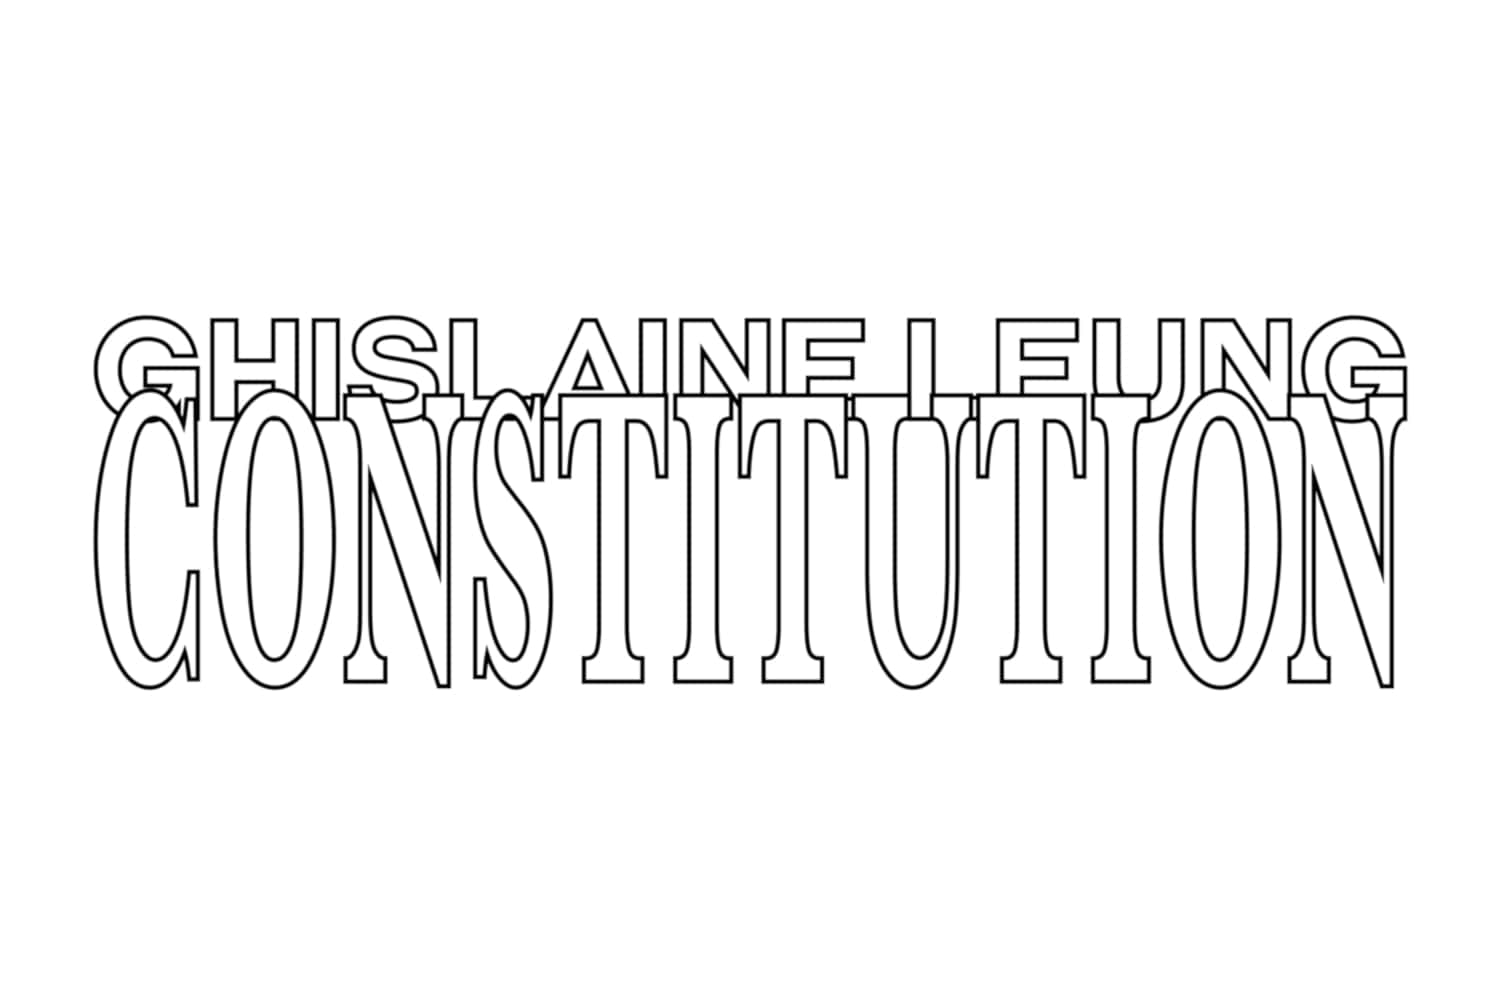 Constitution exhibition poster Ghislaine Leung